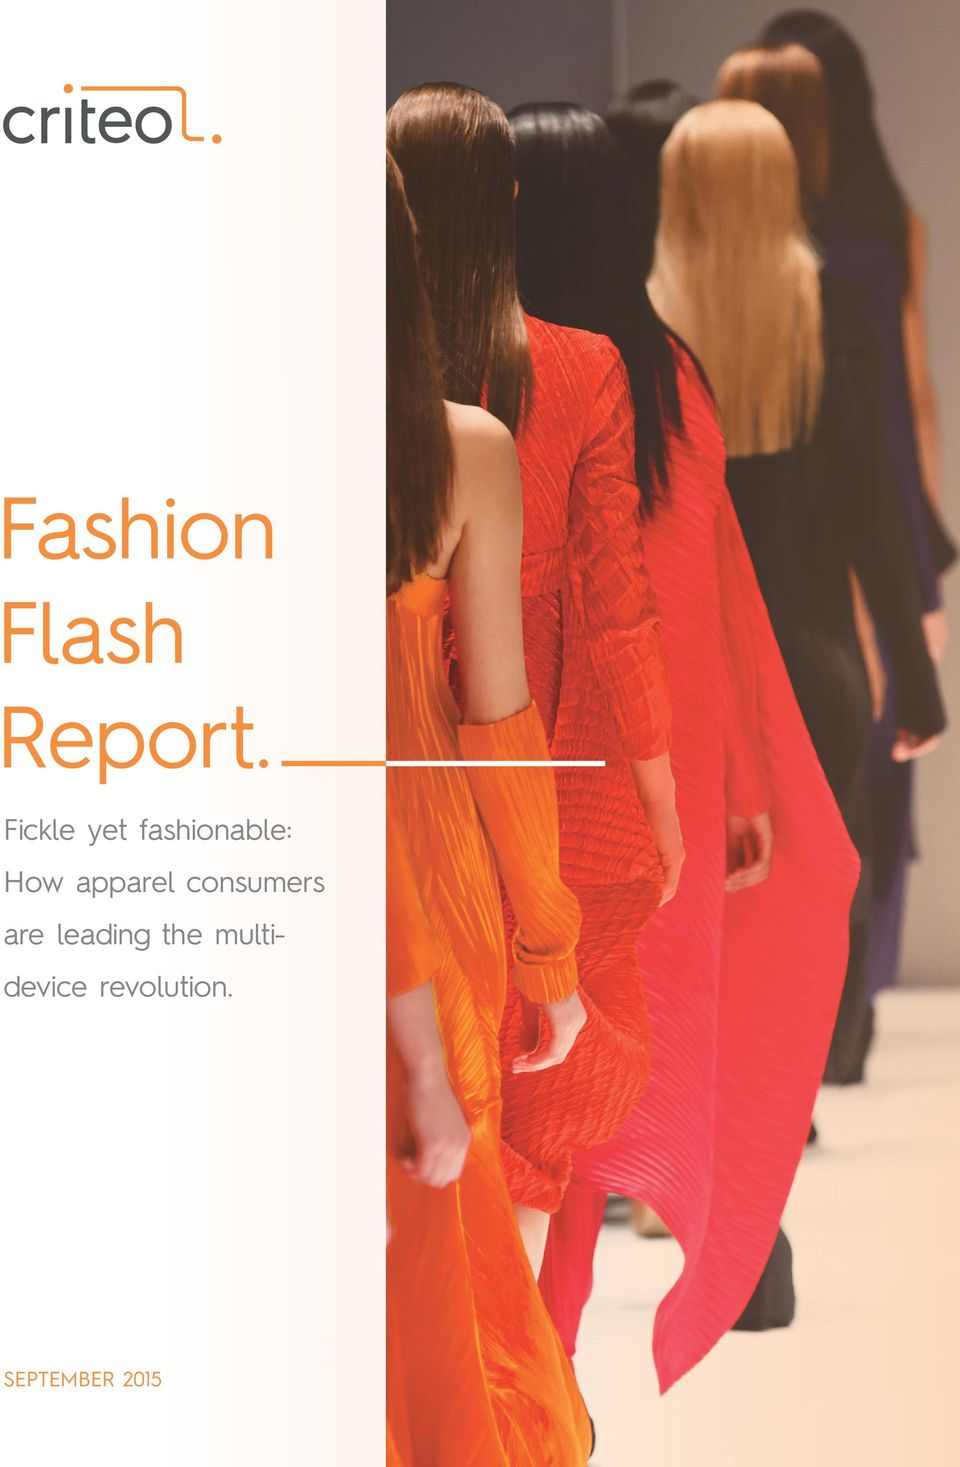 apparel consumers are leading